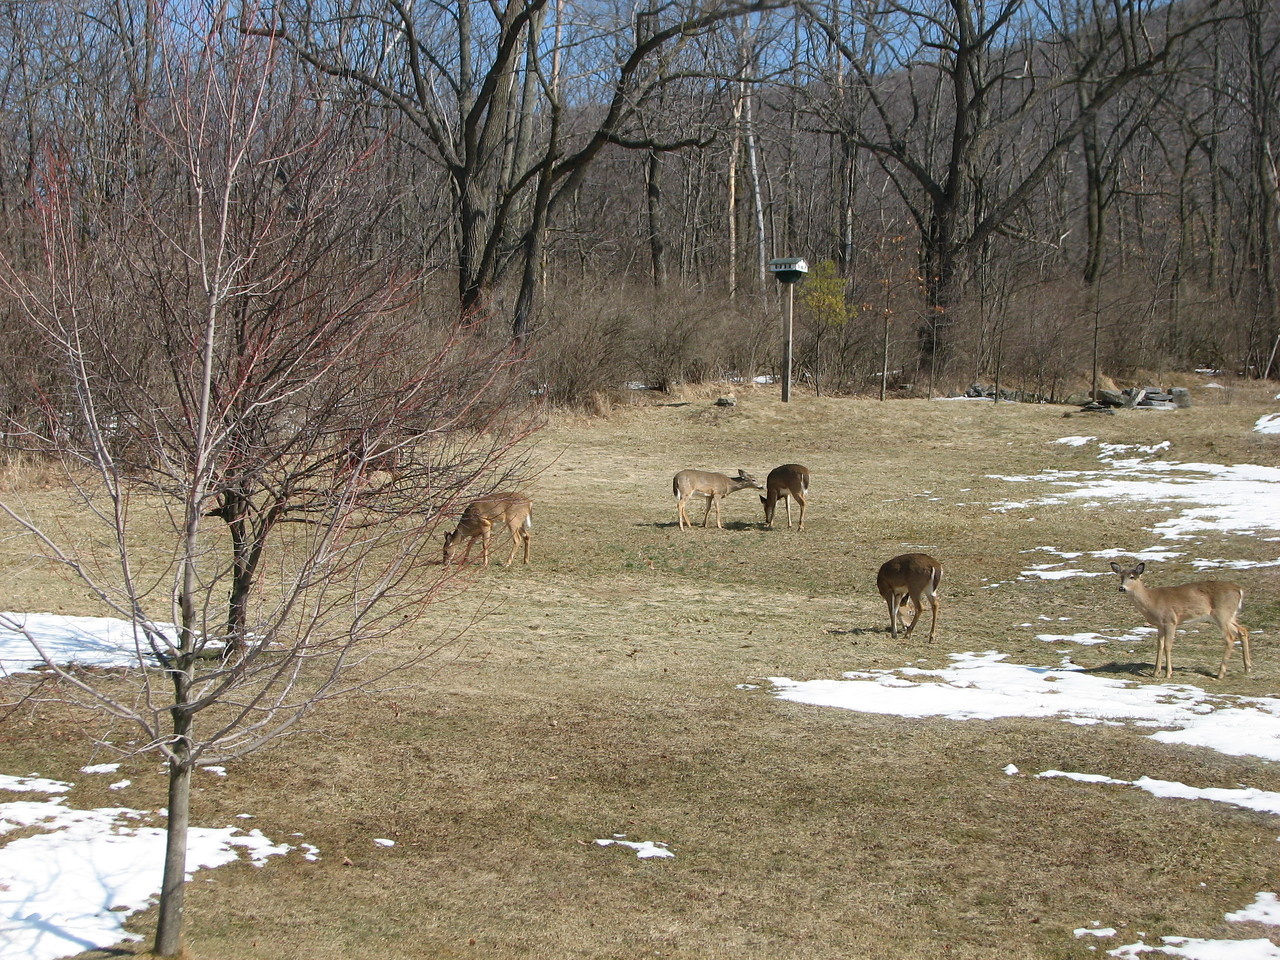 After the thaw, the usual crowd comes out